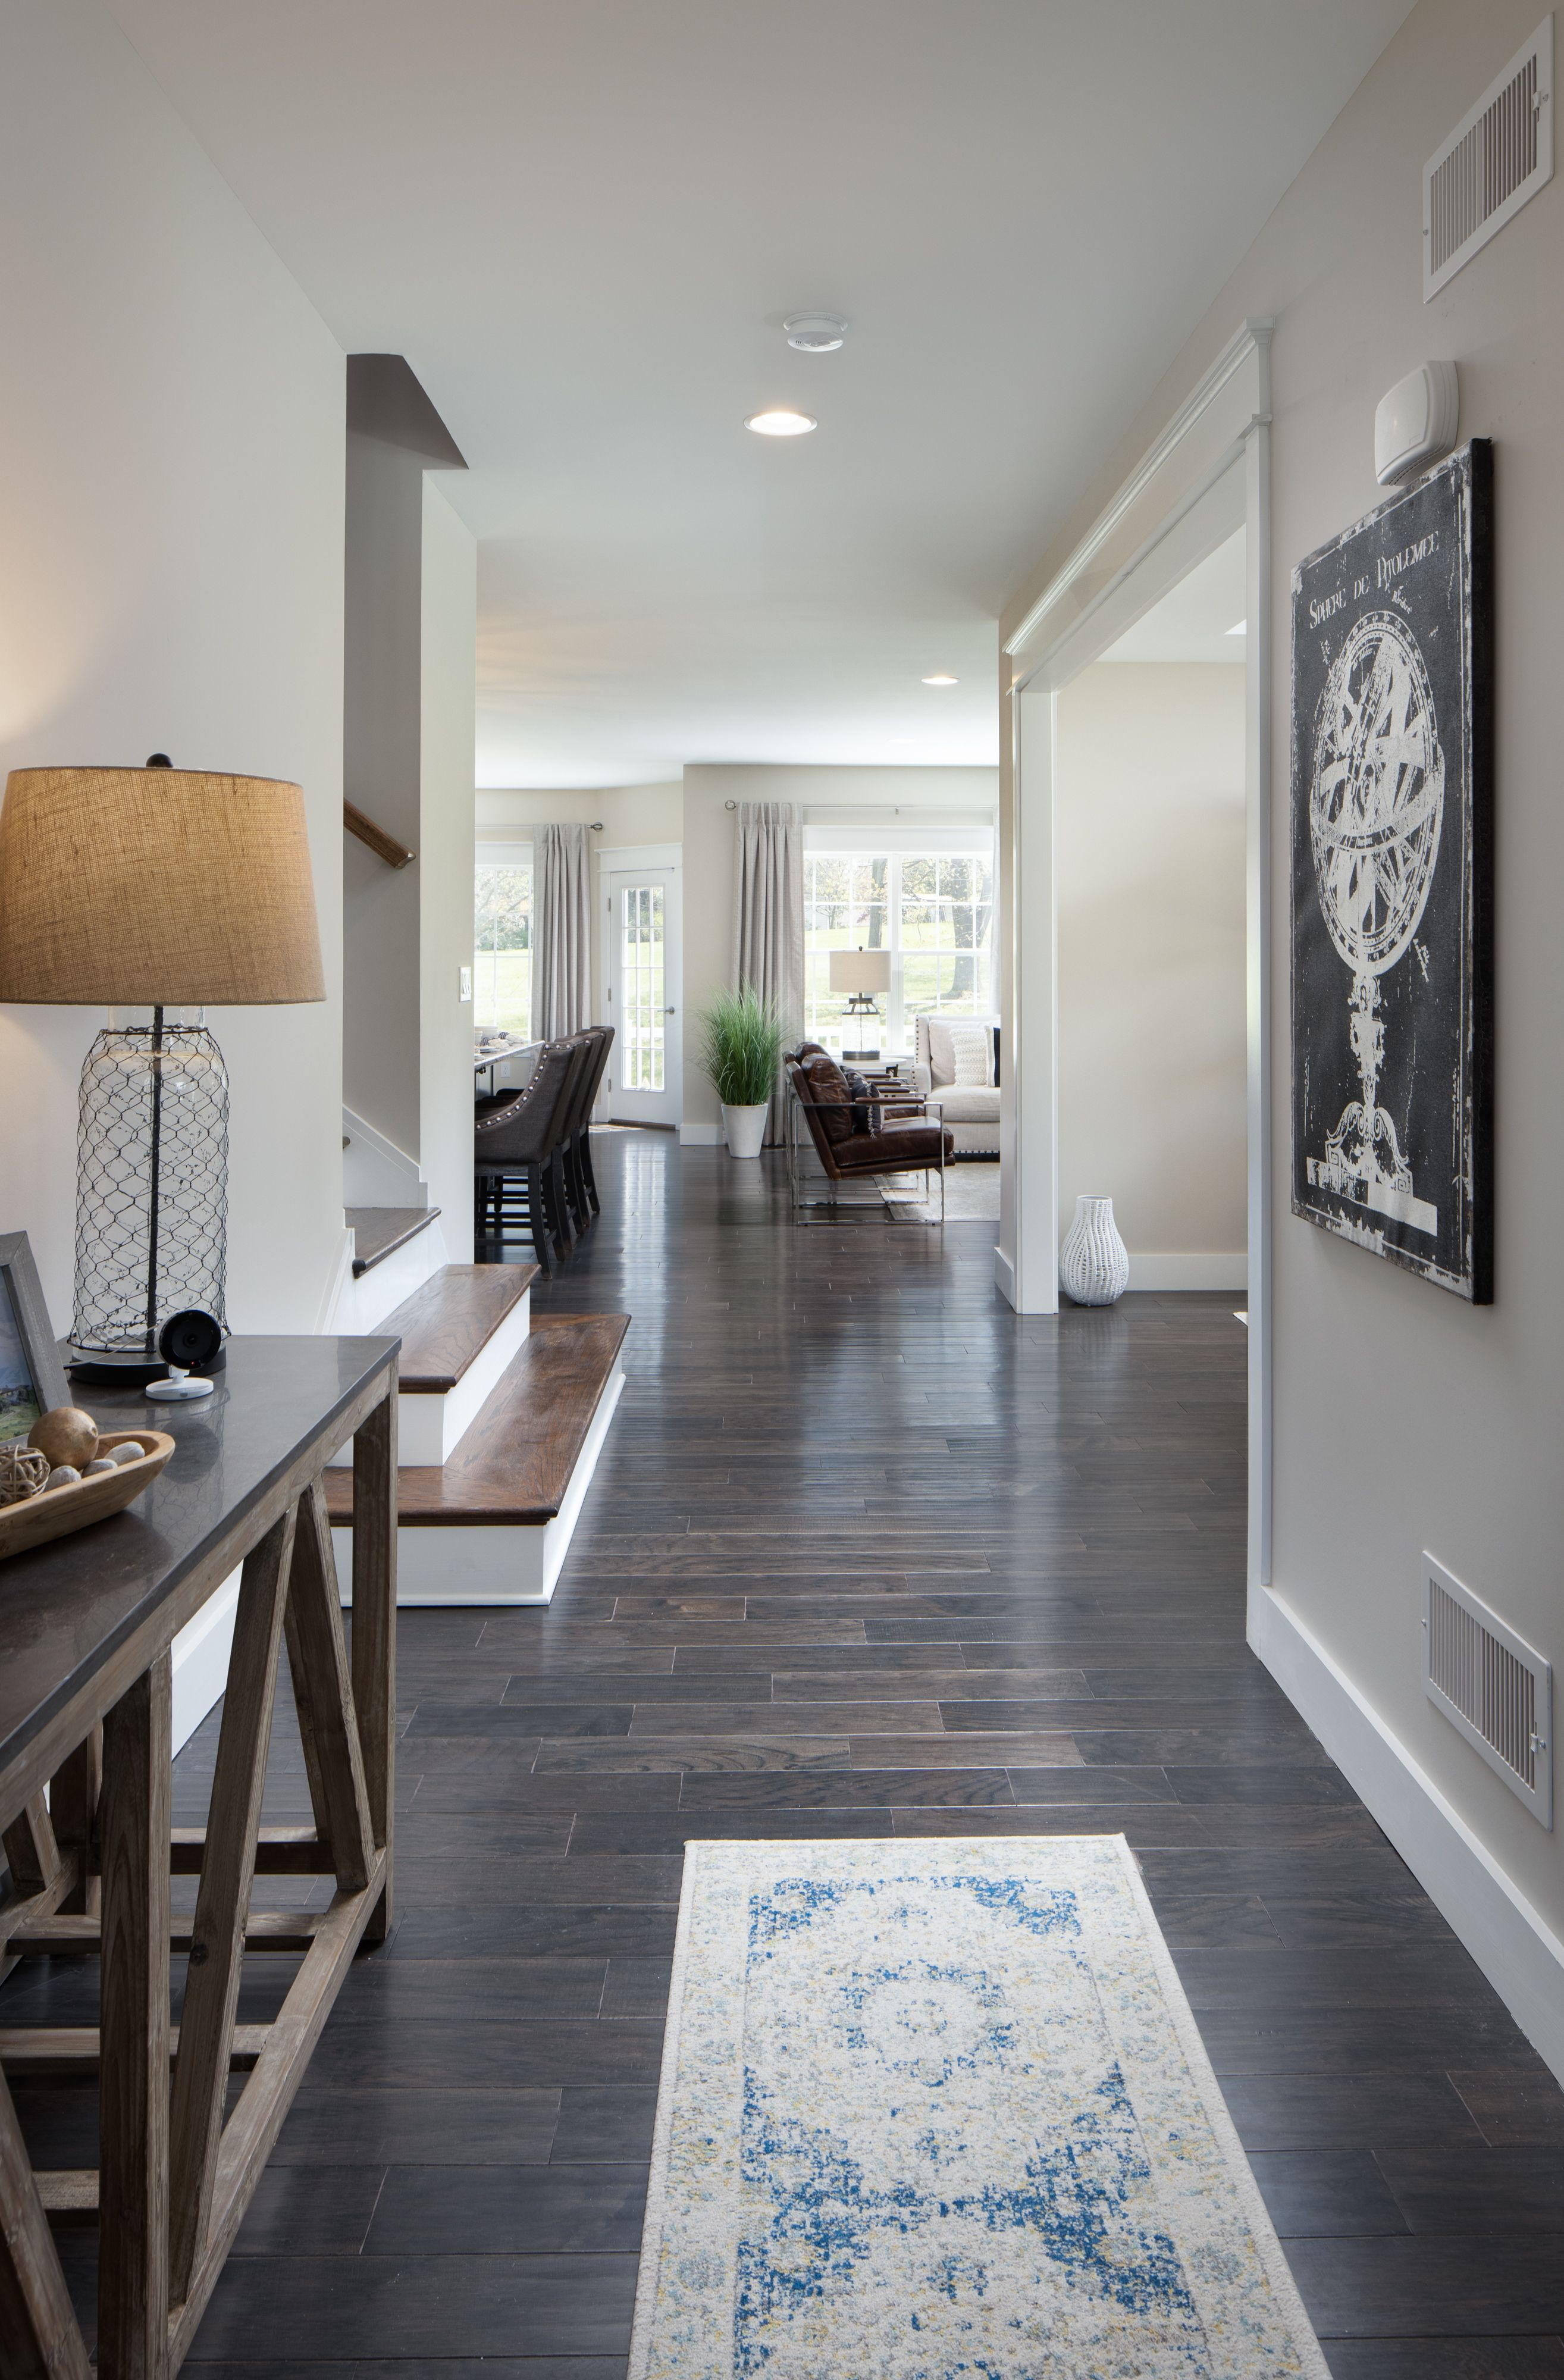 Living Area featured in the Covington Manor By Keystone Custom Homes in Baltimore, MD